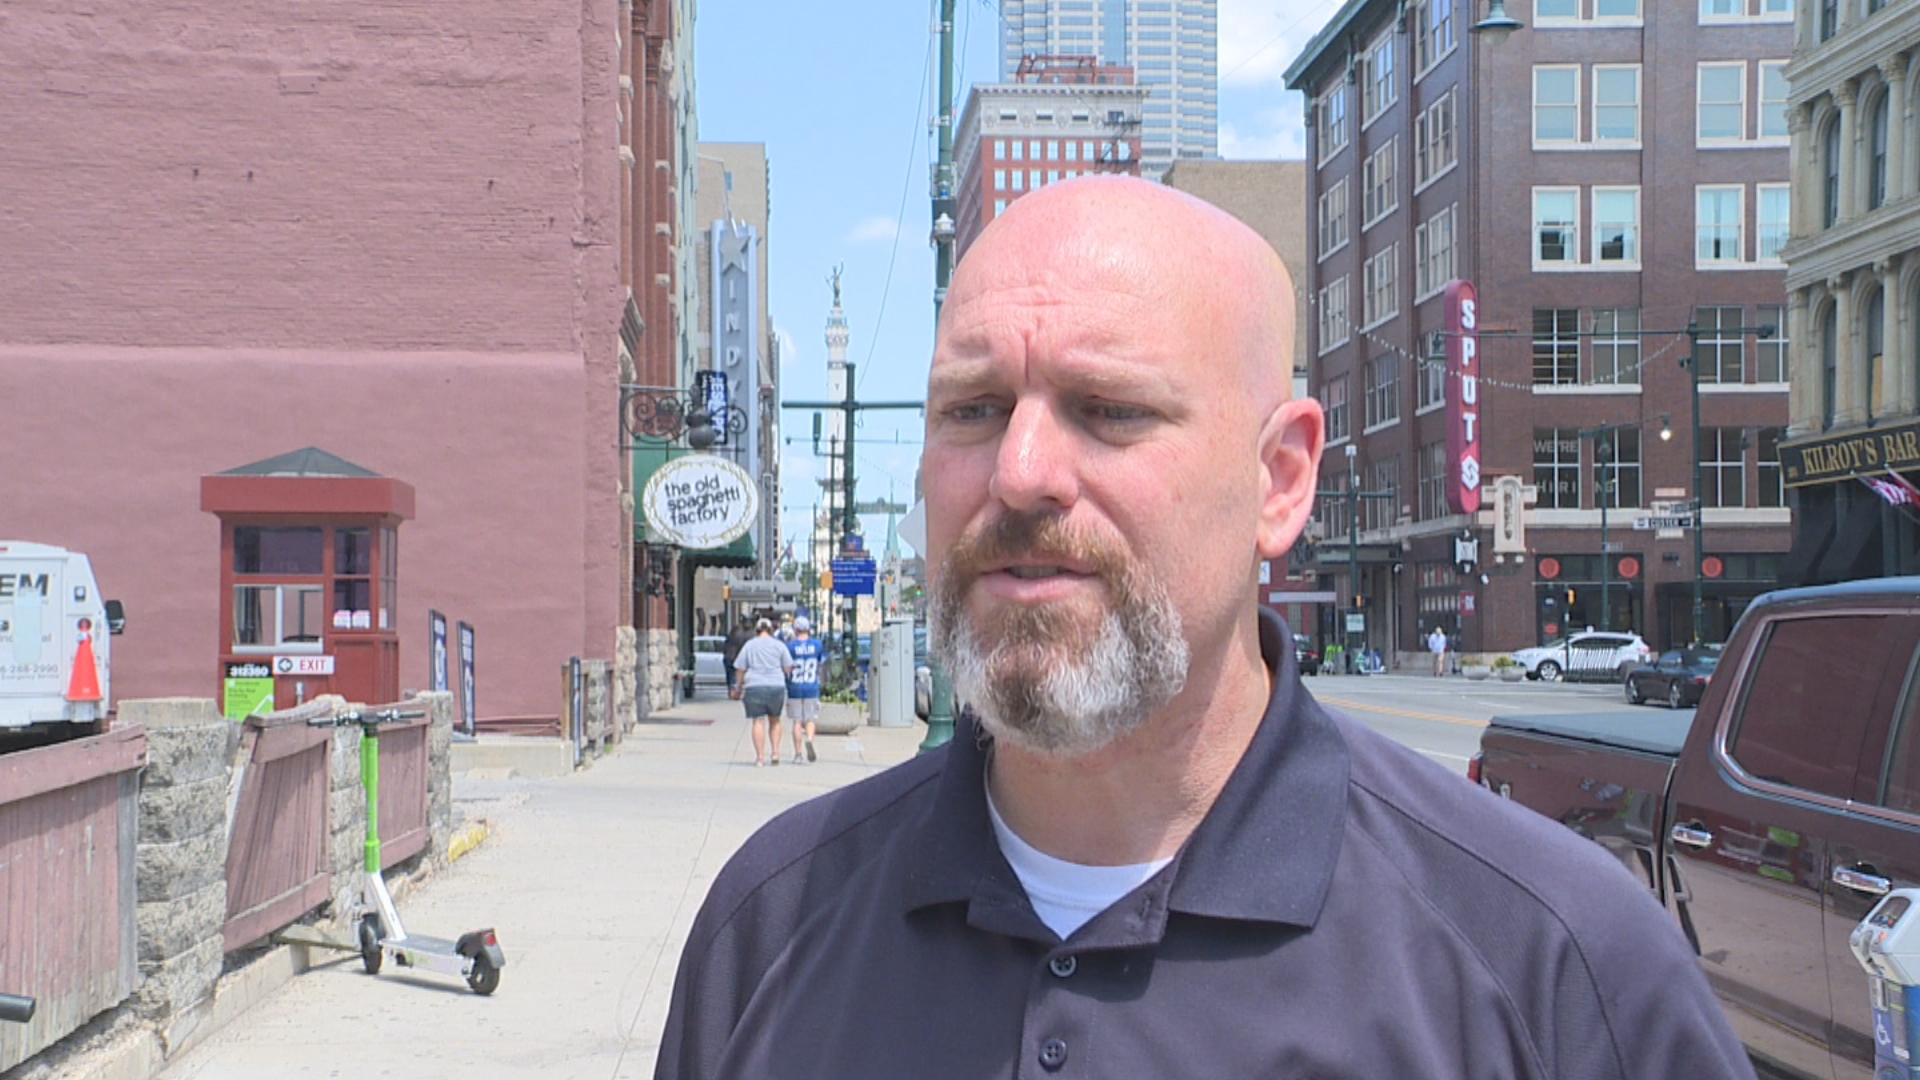 Indianapolis leaders frustrated after another violent weekend